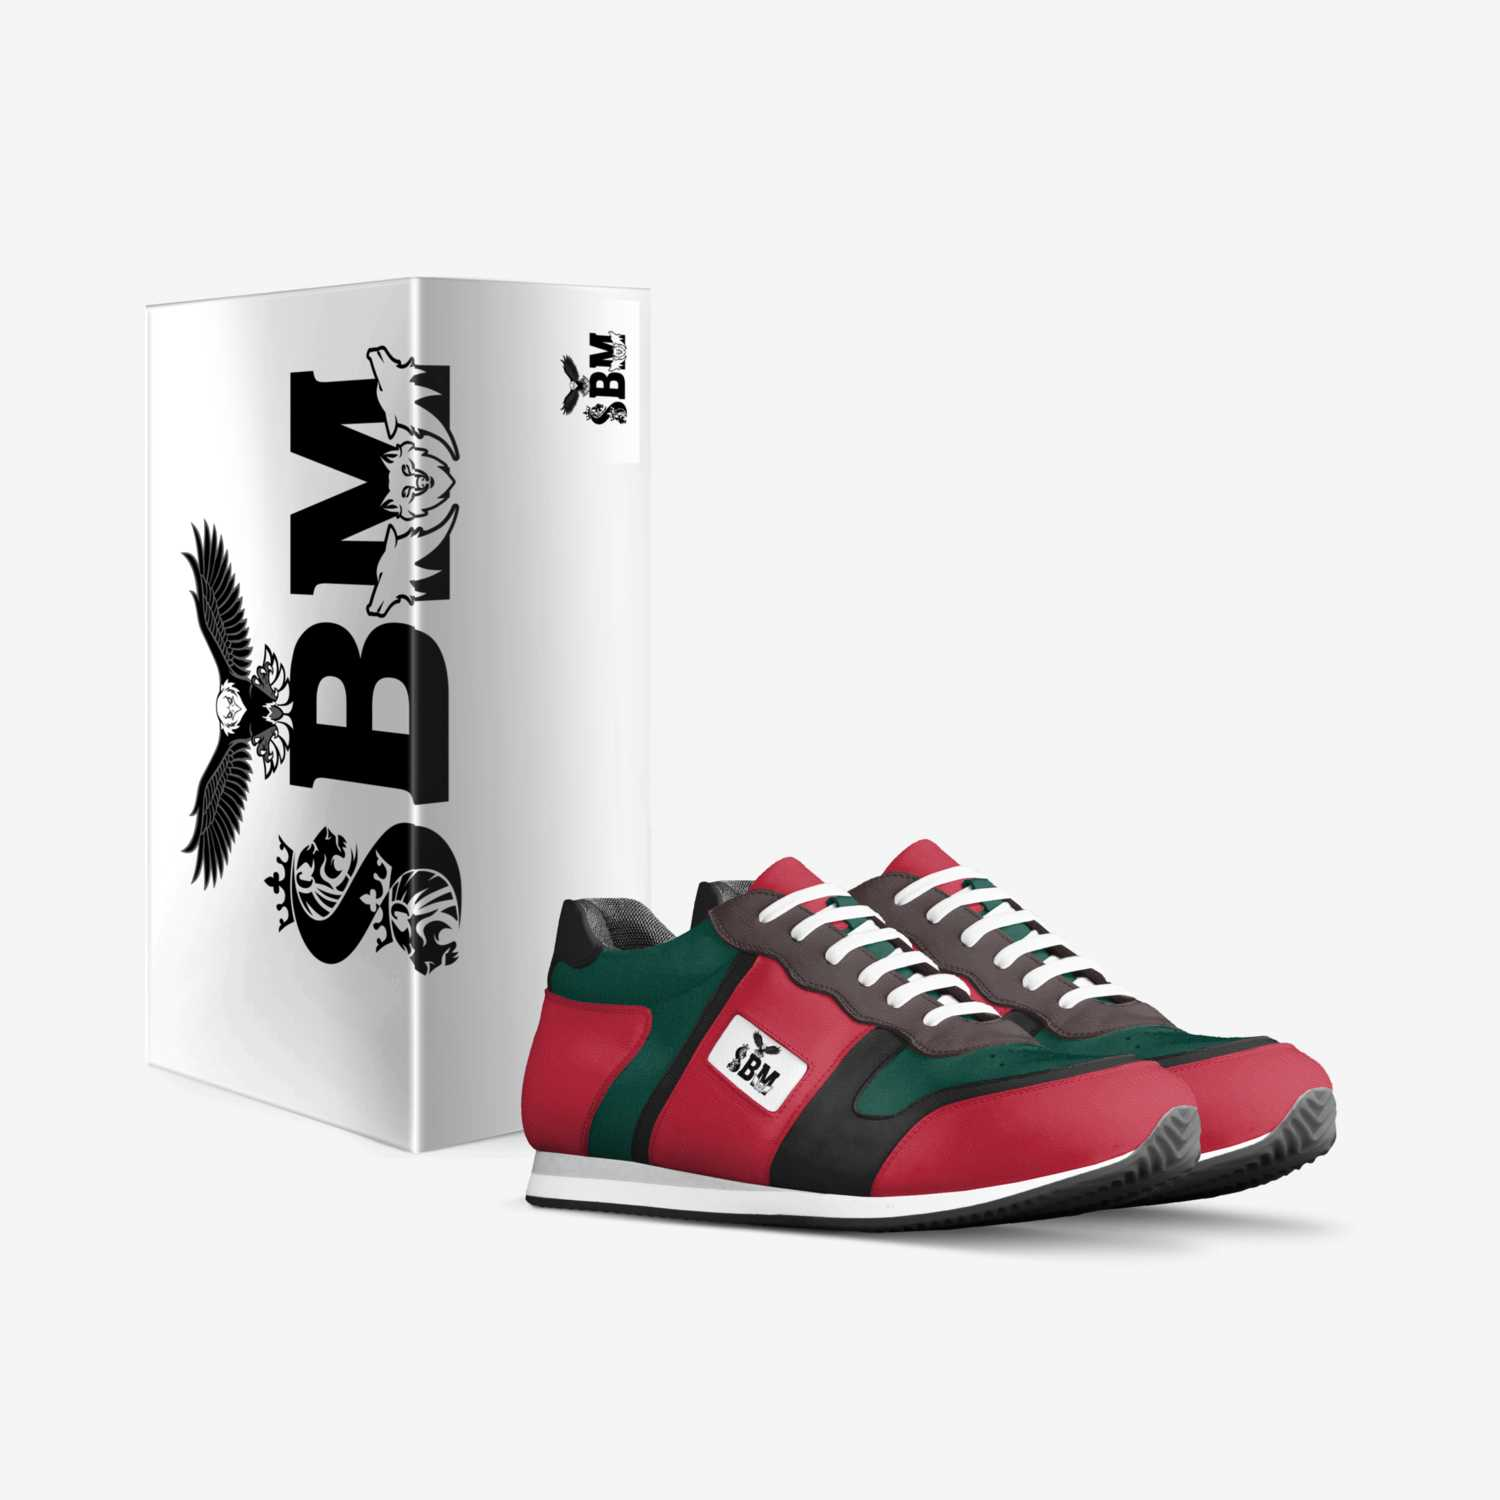 sbm custom made in Italy shoes by Roy Brooks   Box view